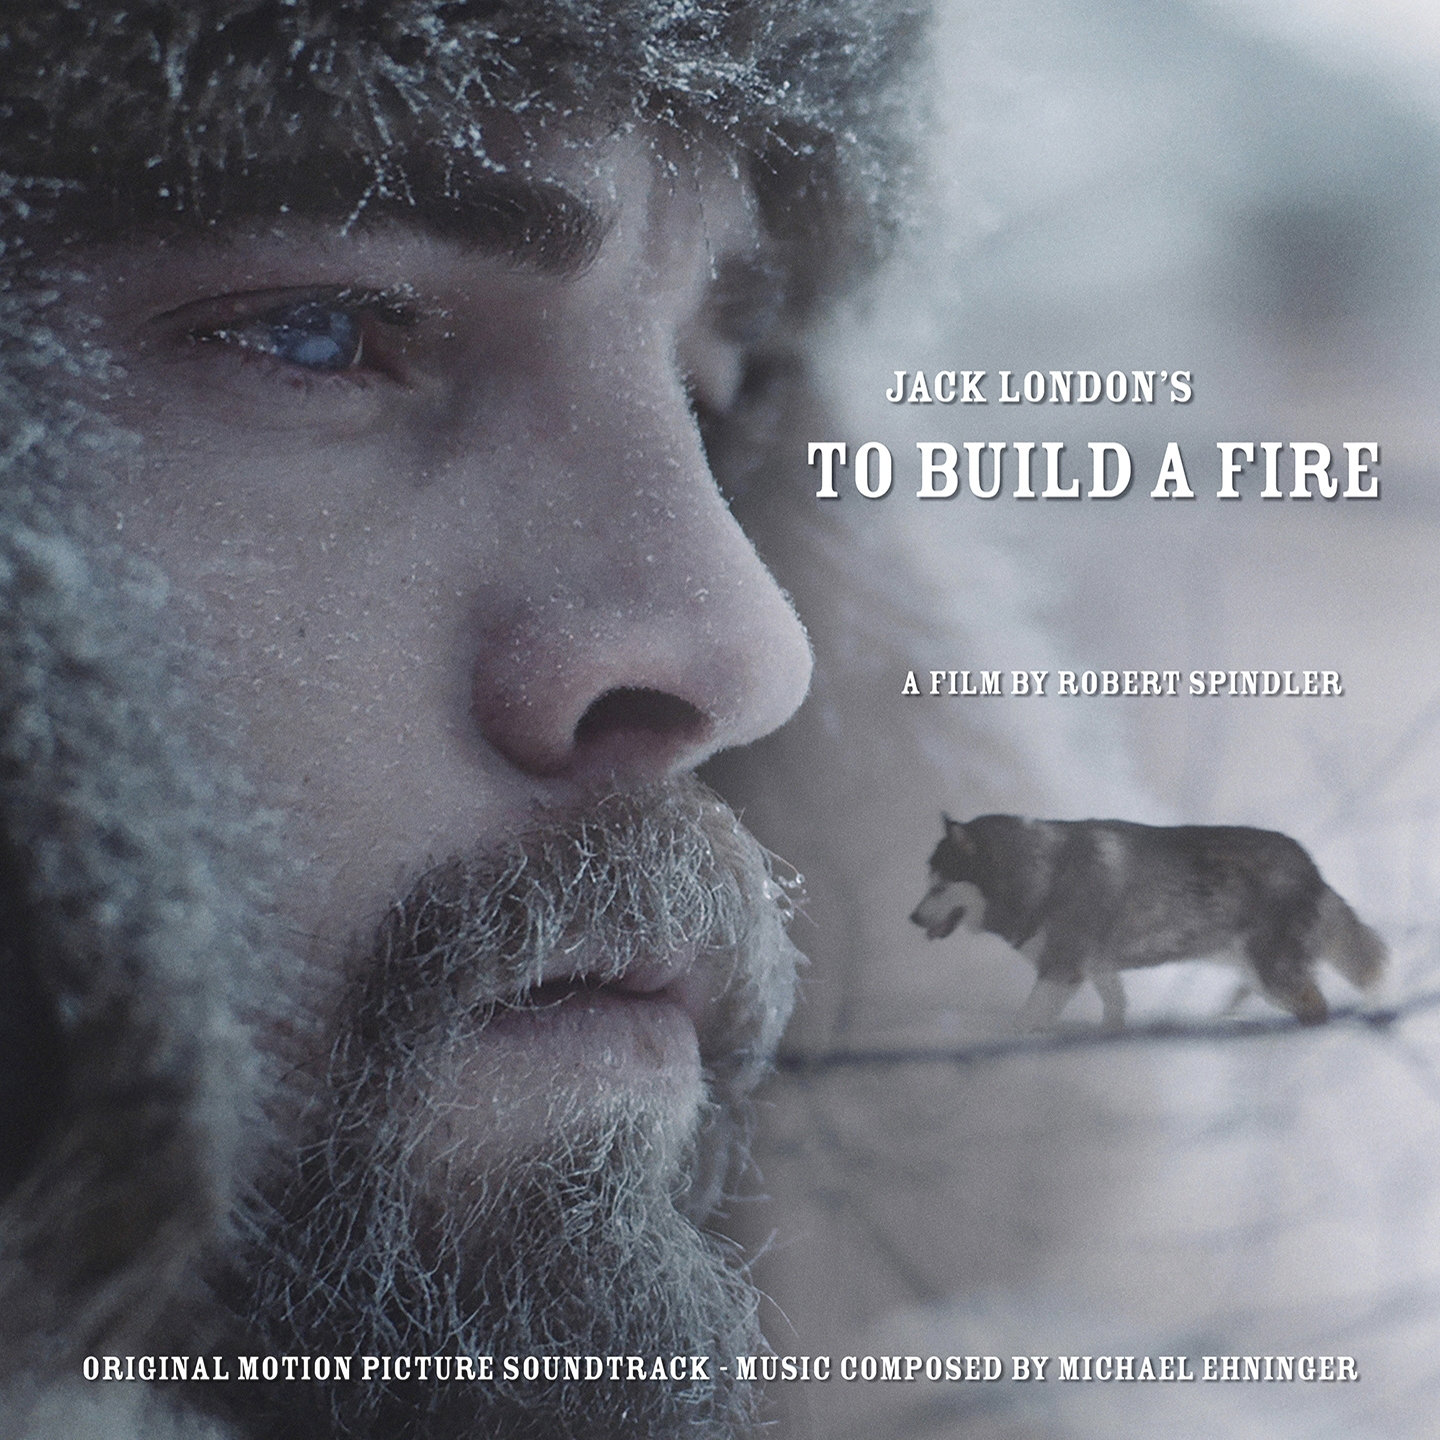 two versions of to build a fire To build a fire, jack london to build a fire is a short story by american author jack london there are two versions of this story, one published in 1902 and the other in 1908 the story written in 1908 has become an often anthologized classic, while the 1902 story becomes a lesser known story.